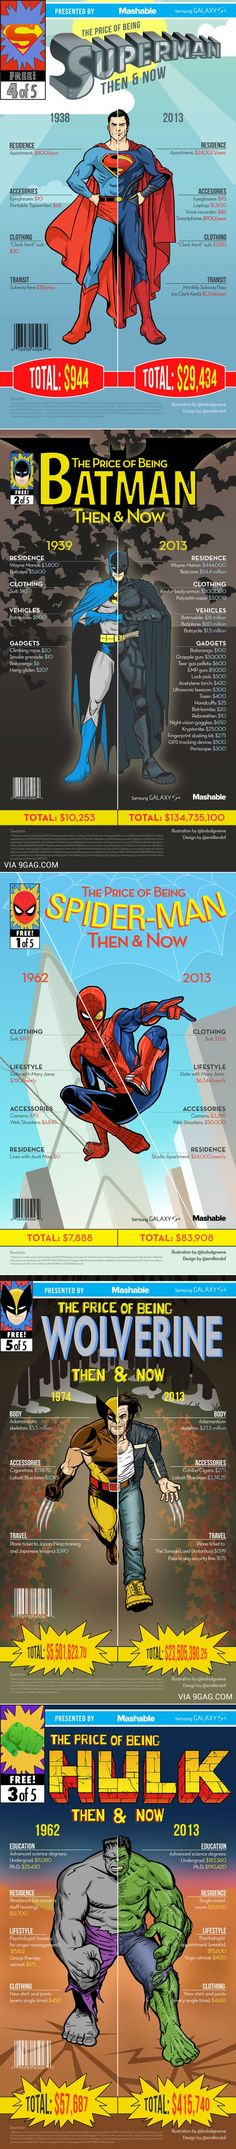 The Price of Being Superheroes Then & Now: Superman, Batman, Spider-Man, Wolverine, Hulk